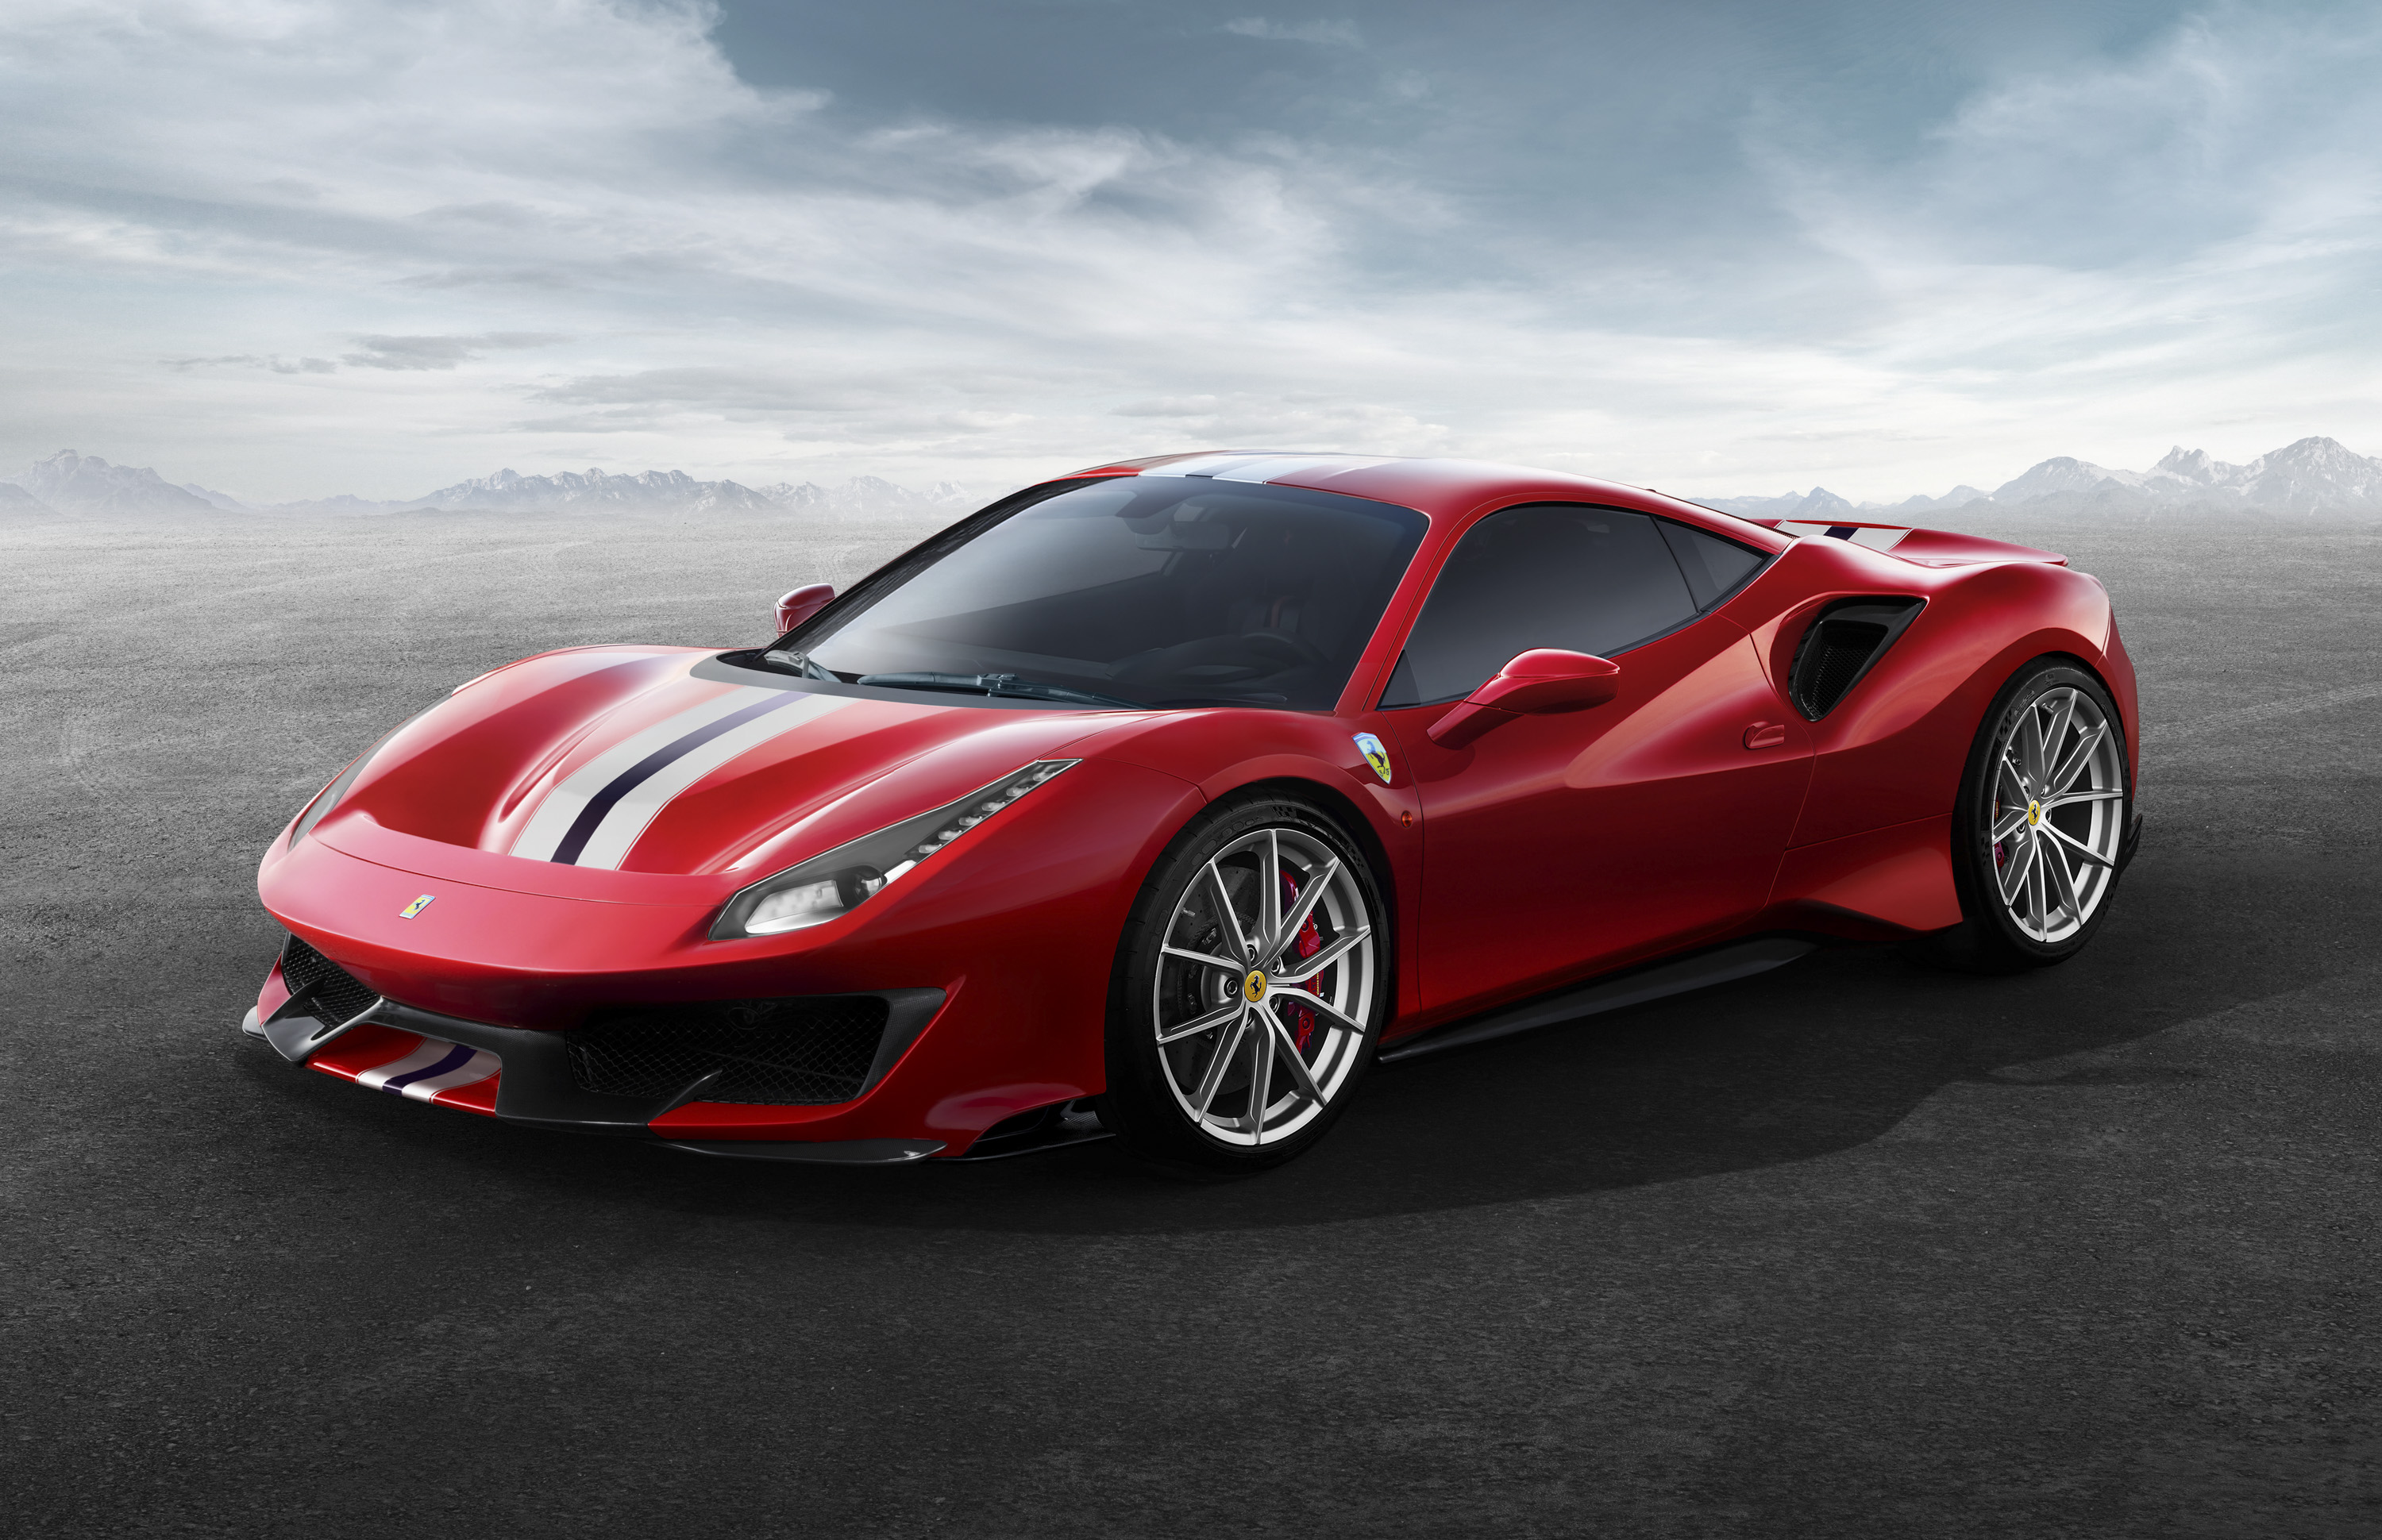 wanted pur img price novitec automotive dropped larger ferrari name forums views for attachment and sale accessories click italia image version size springs jpg parts wheels